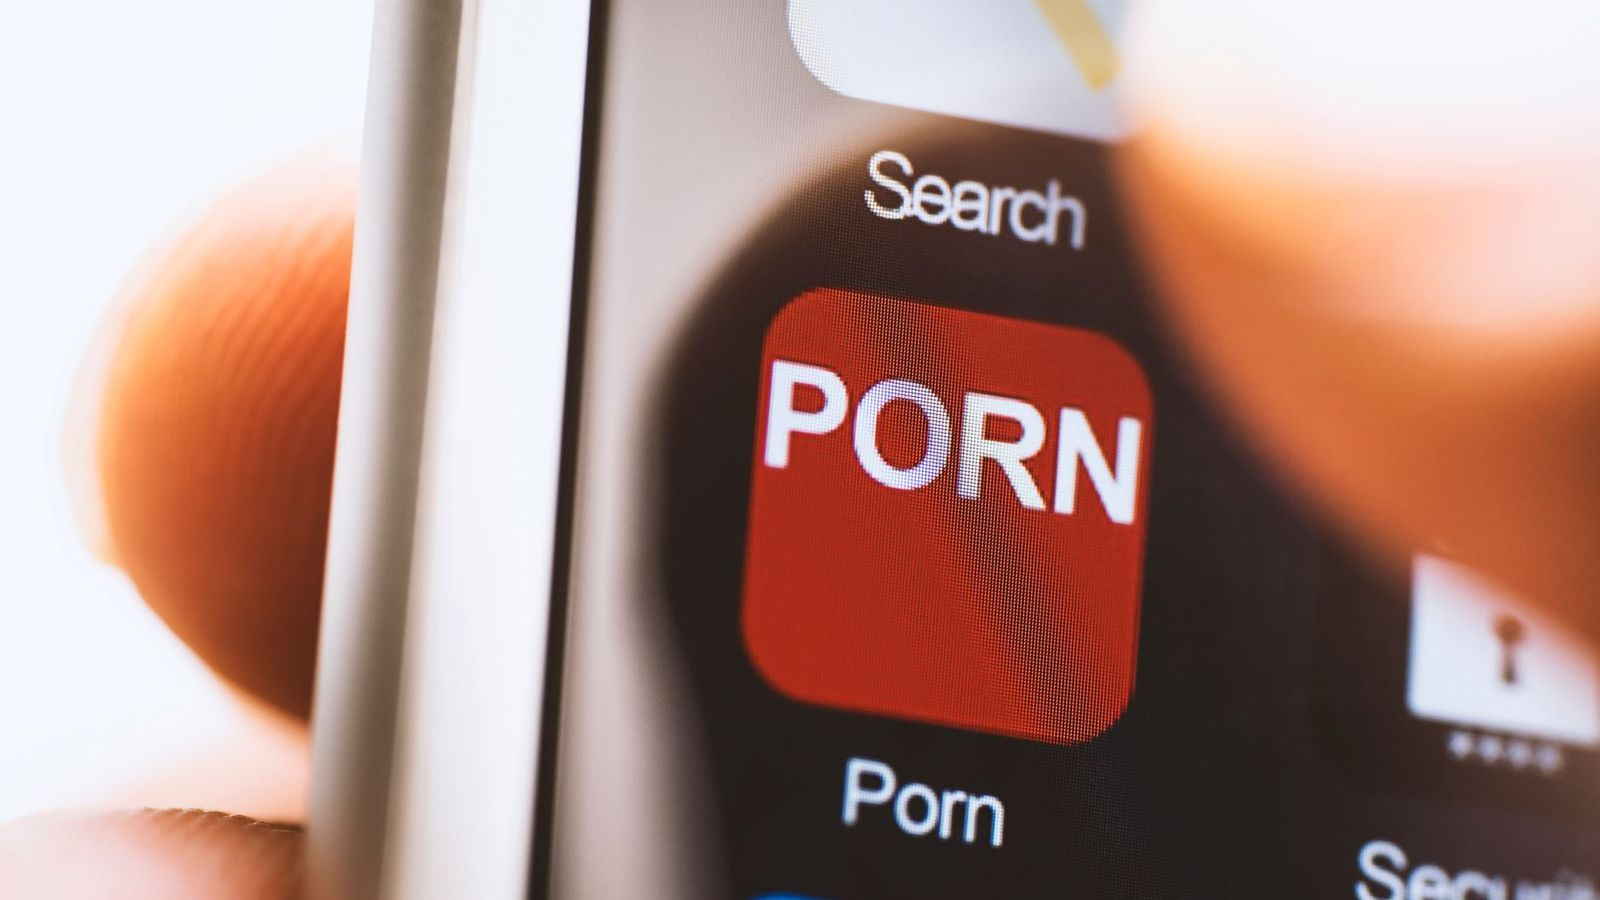 'Porn block' delayed for third time after government climbdown - Sky sources